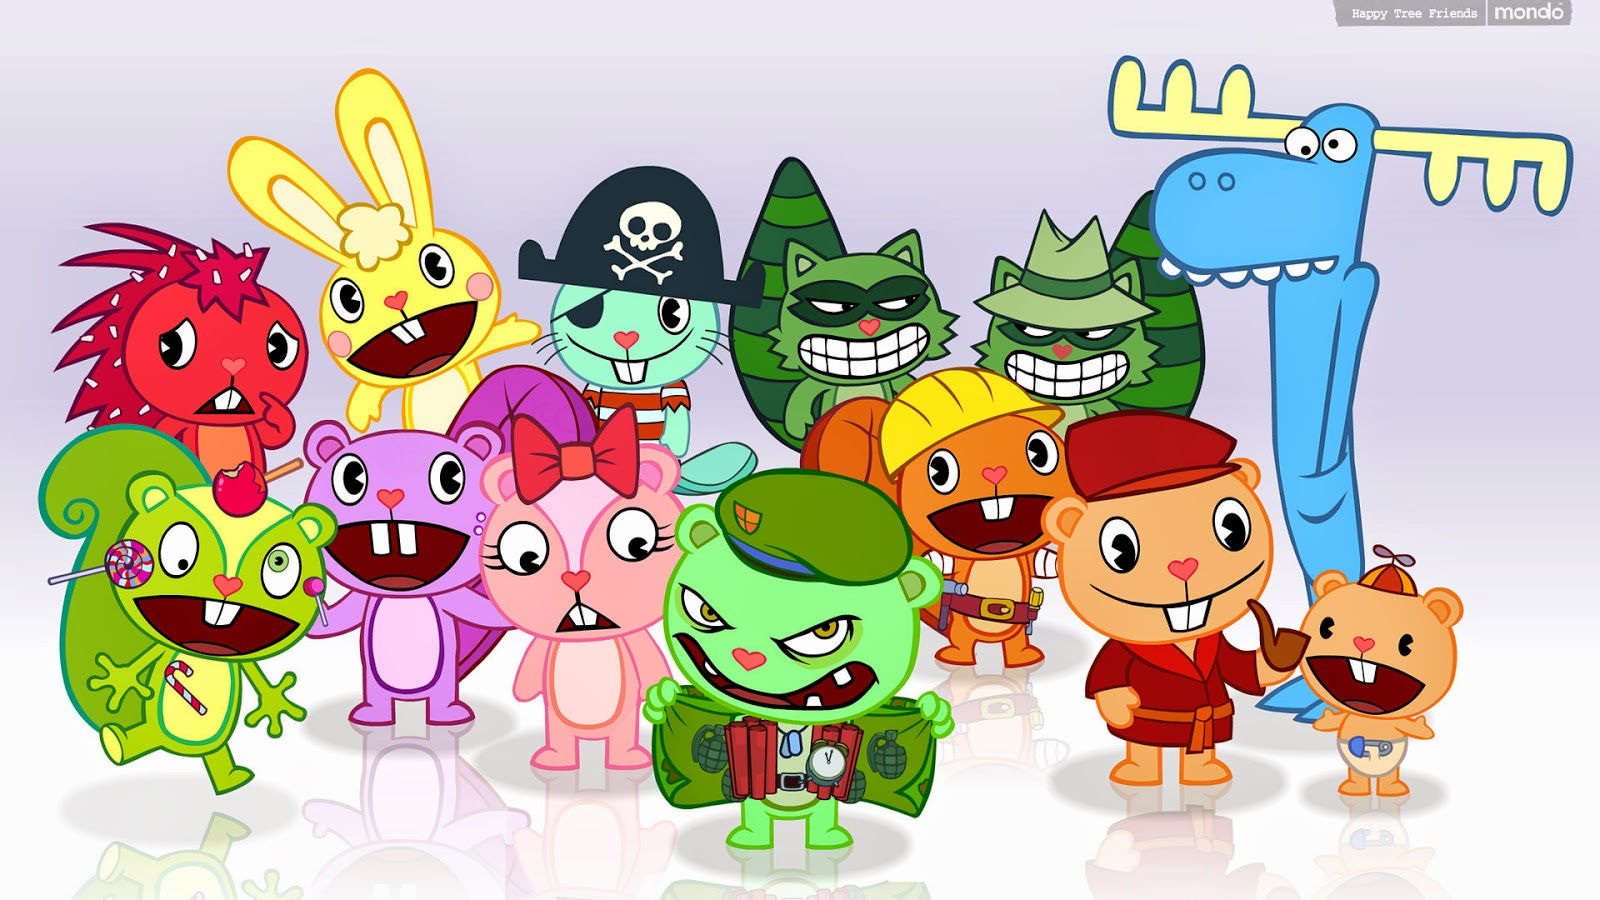 GalleryCartoon GAMBAR KARTUN HAPPY TREE FRIENDS  Picture 6